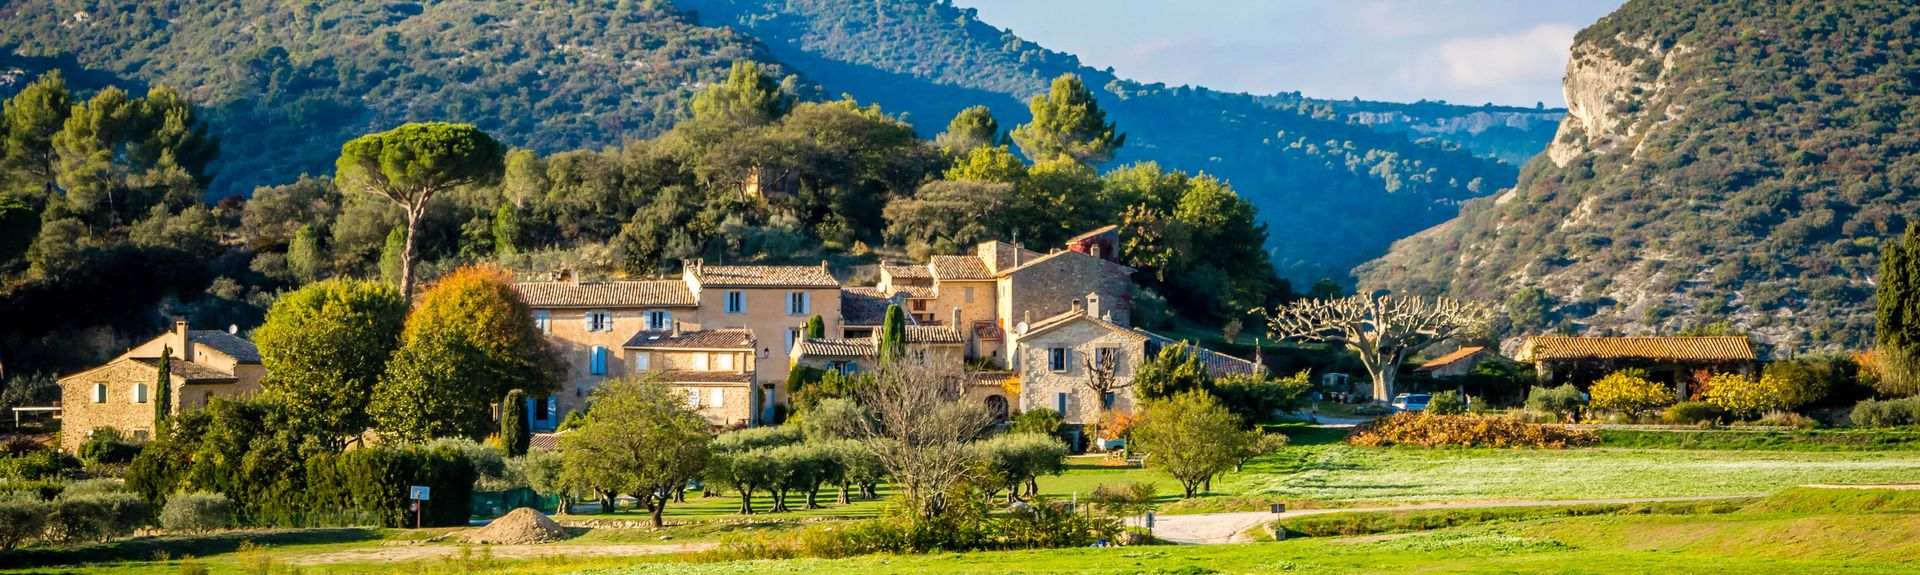 St Remy Vrbo Saint Rémy De Provence Fr Vacation Rentals Houses More